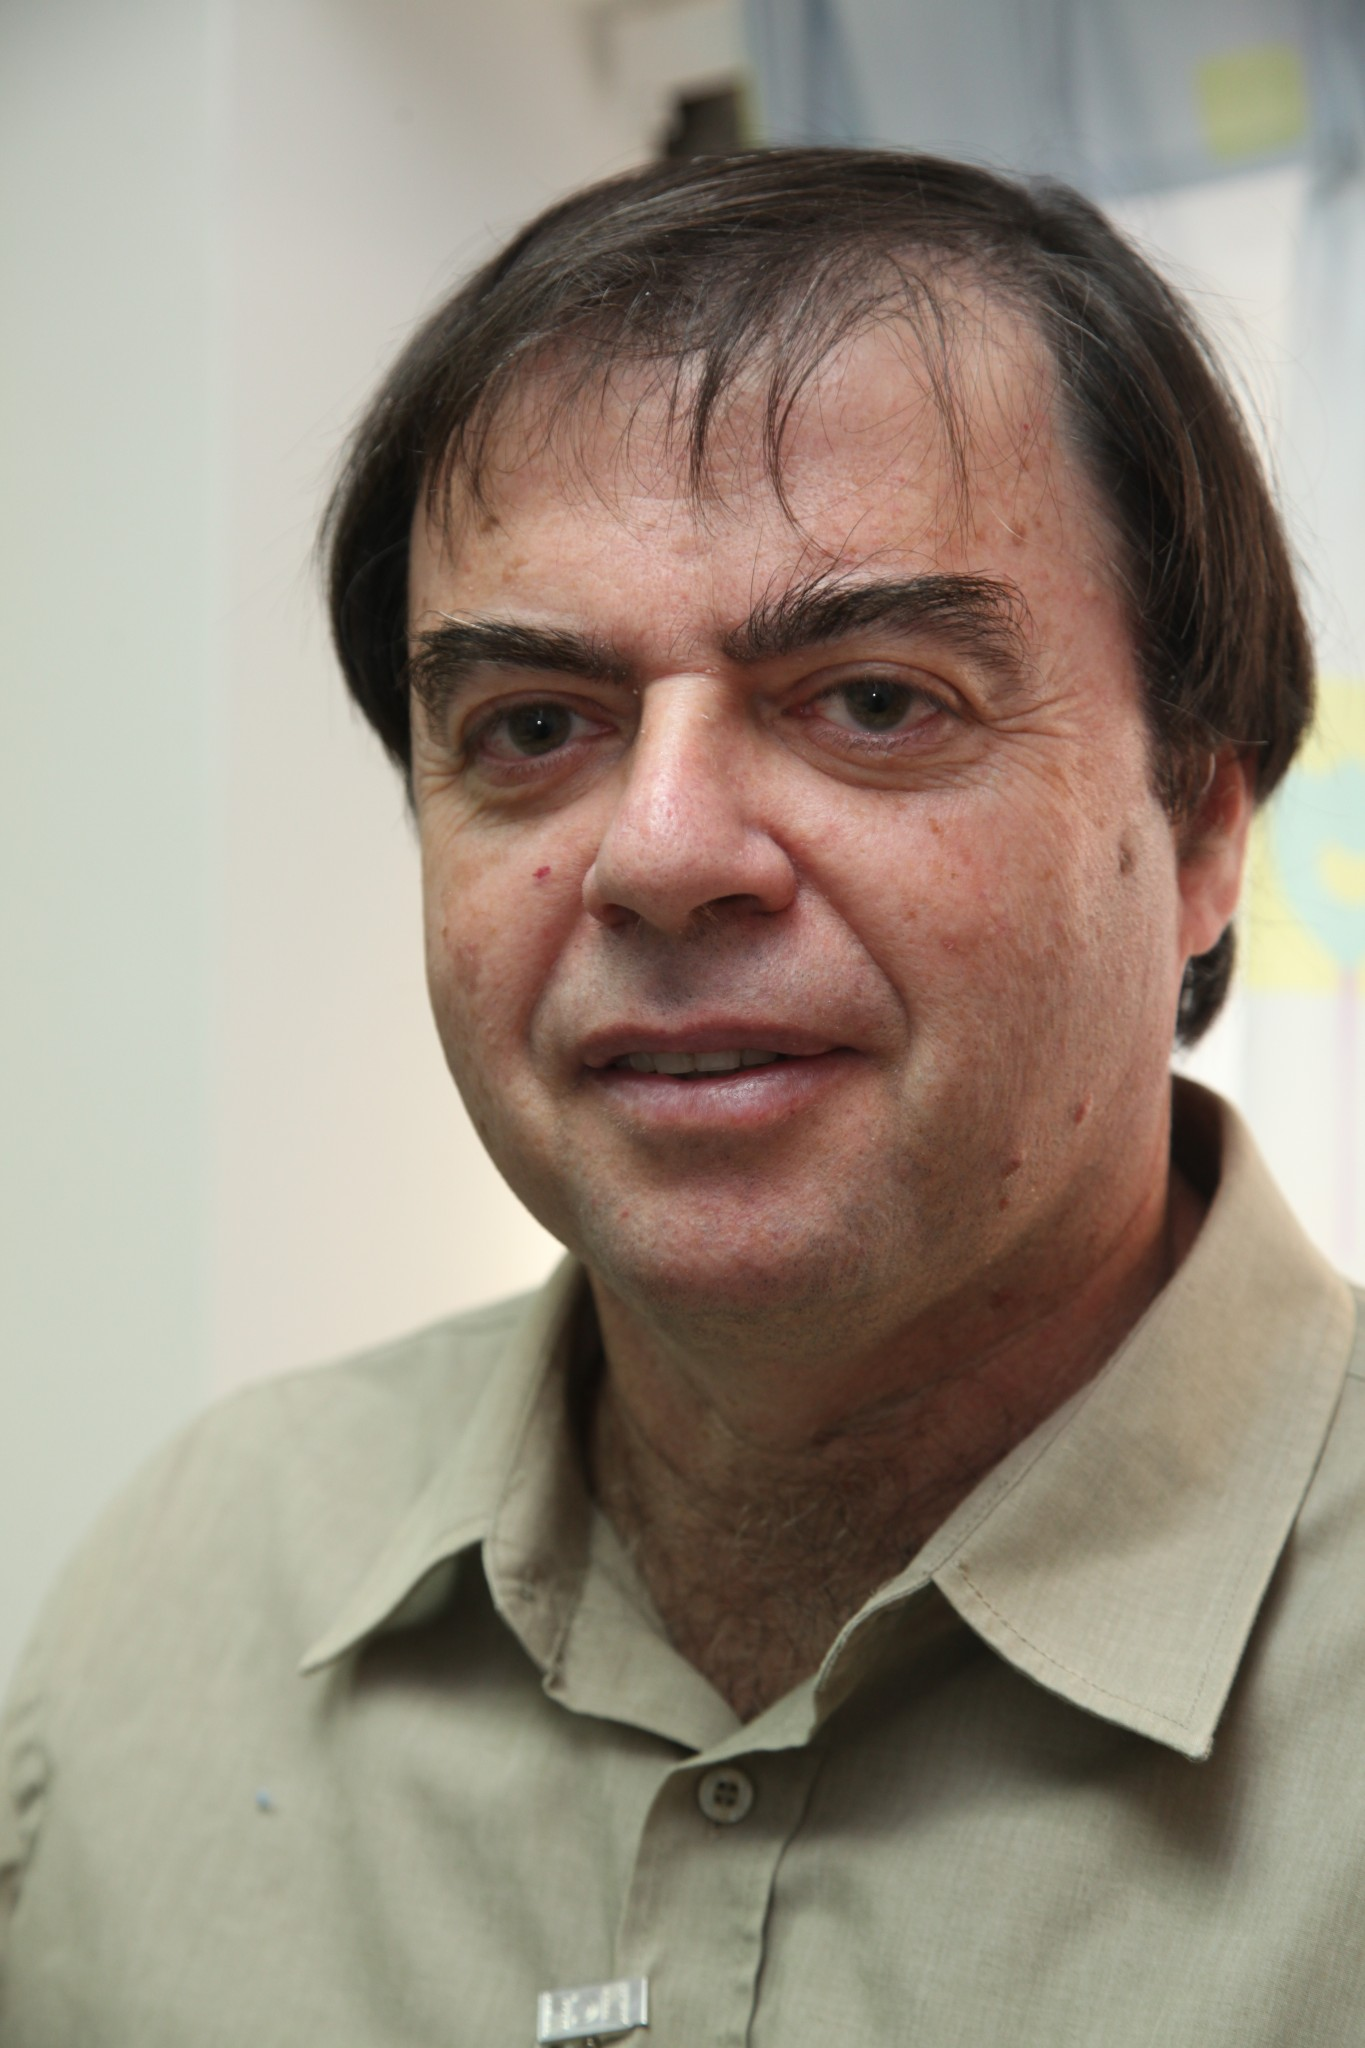 Professor Eran Ben-Arye. Photo by Office of the spokesperson, Technion